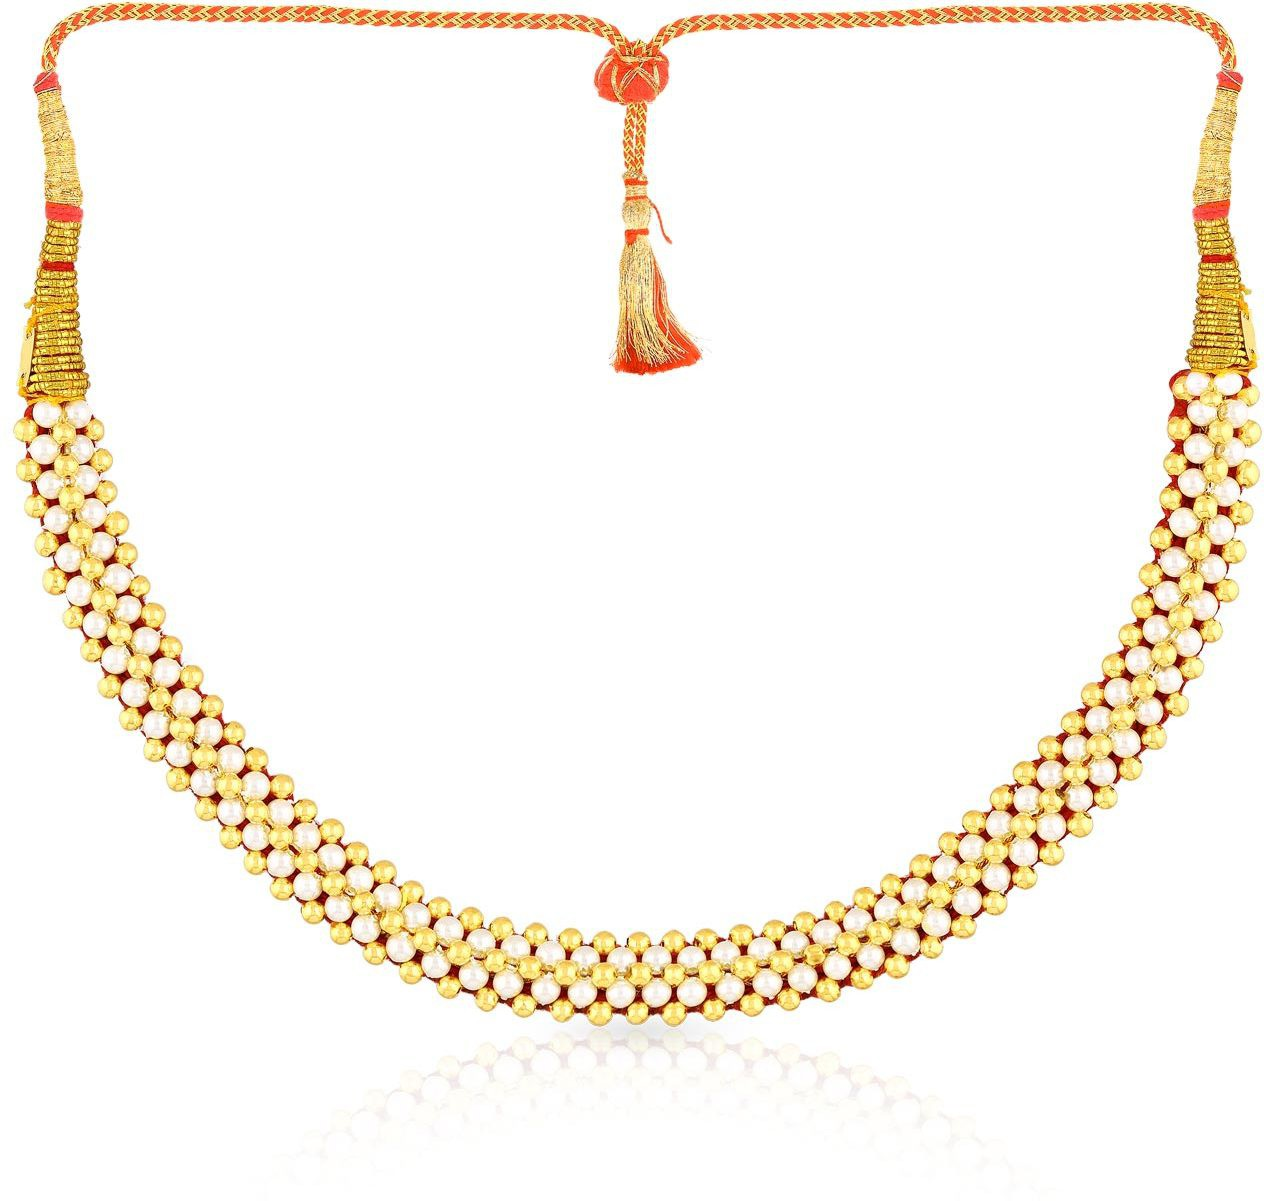 Deals - Delhi - Malabar <br> Gold & Diamond Jewellery<br> Category - jewellery<br> Business - Flipkart.com